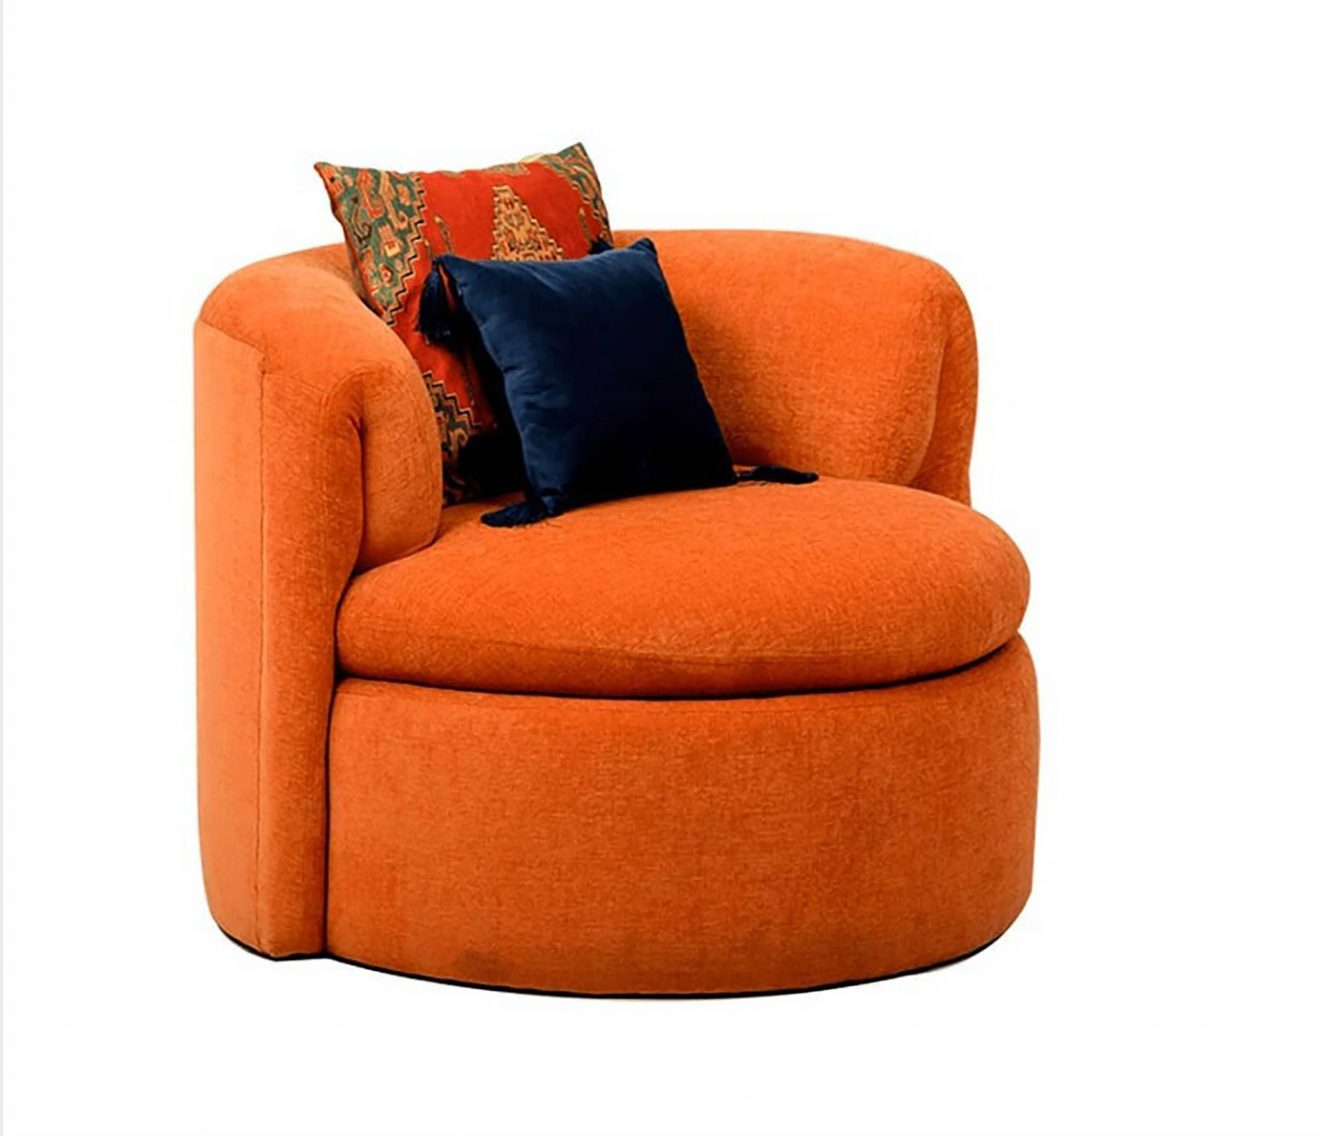 Enhance your space with Ficus Fine Living Accent Chairs